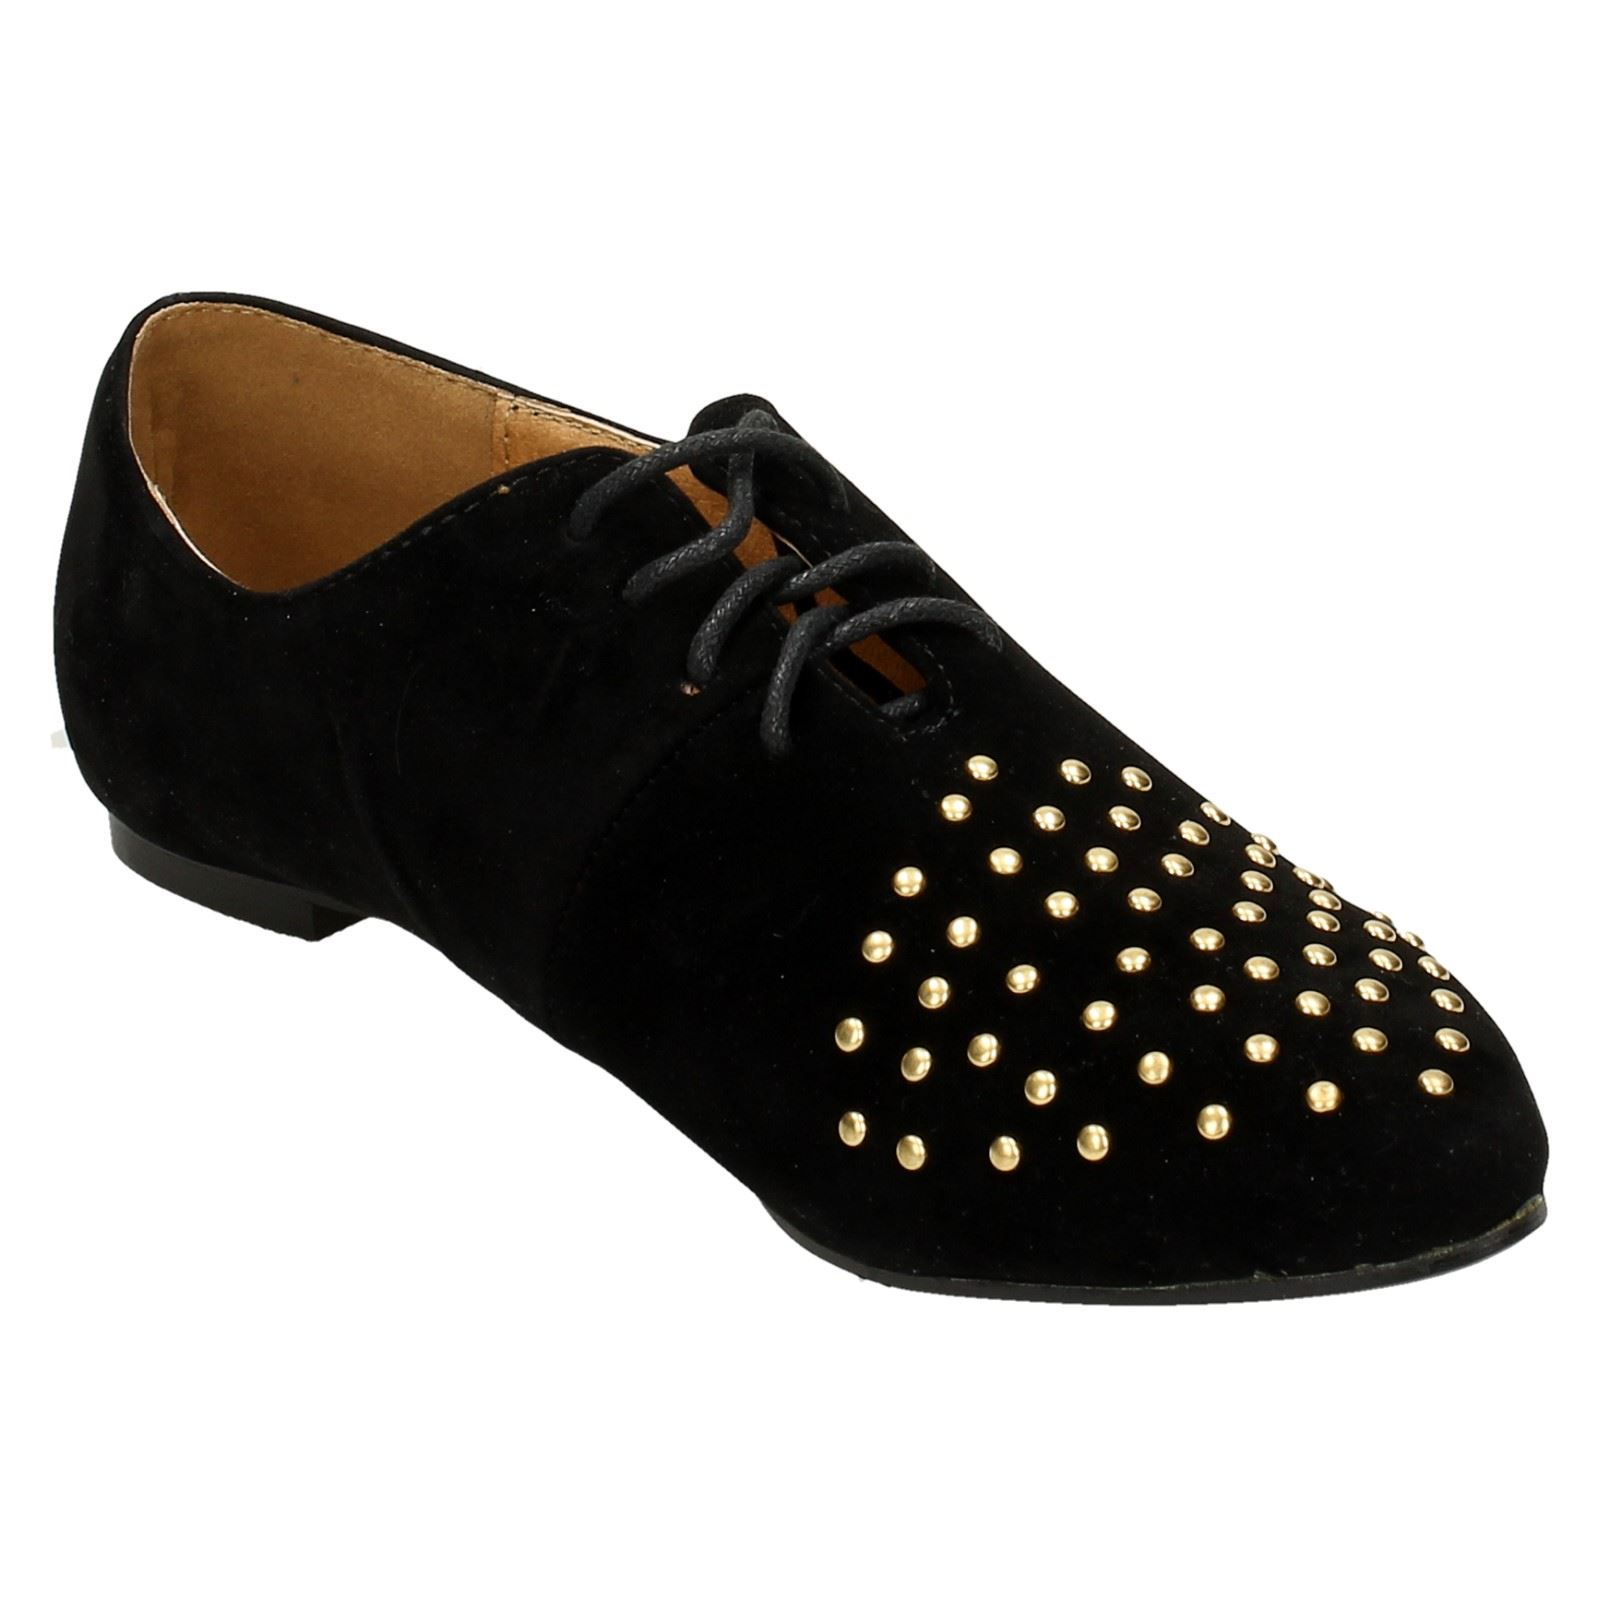 Spot-On-Ladies-Lace-Up-Shoes-with-Pointed-Toe thumbnail 8